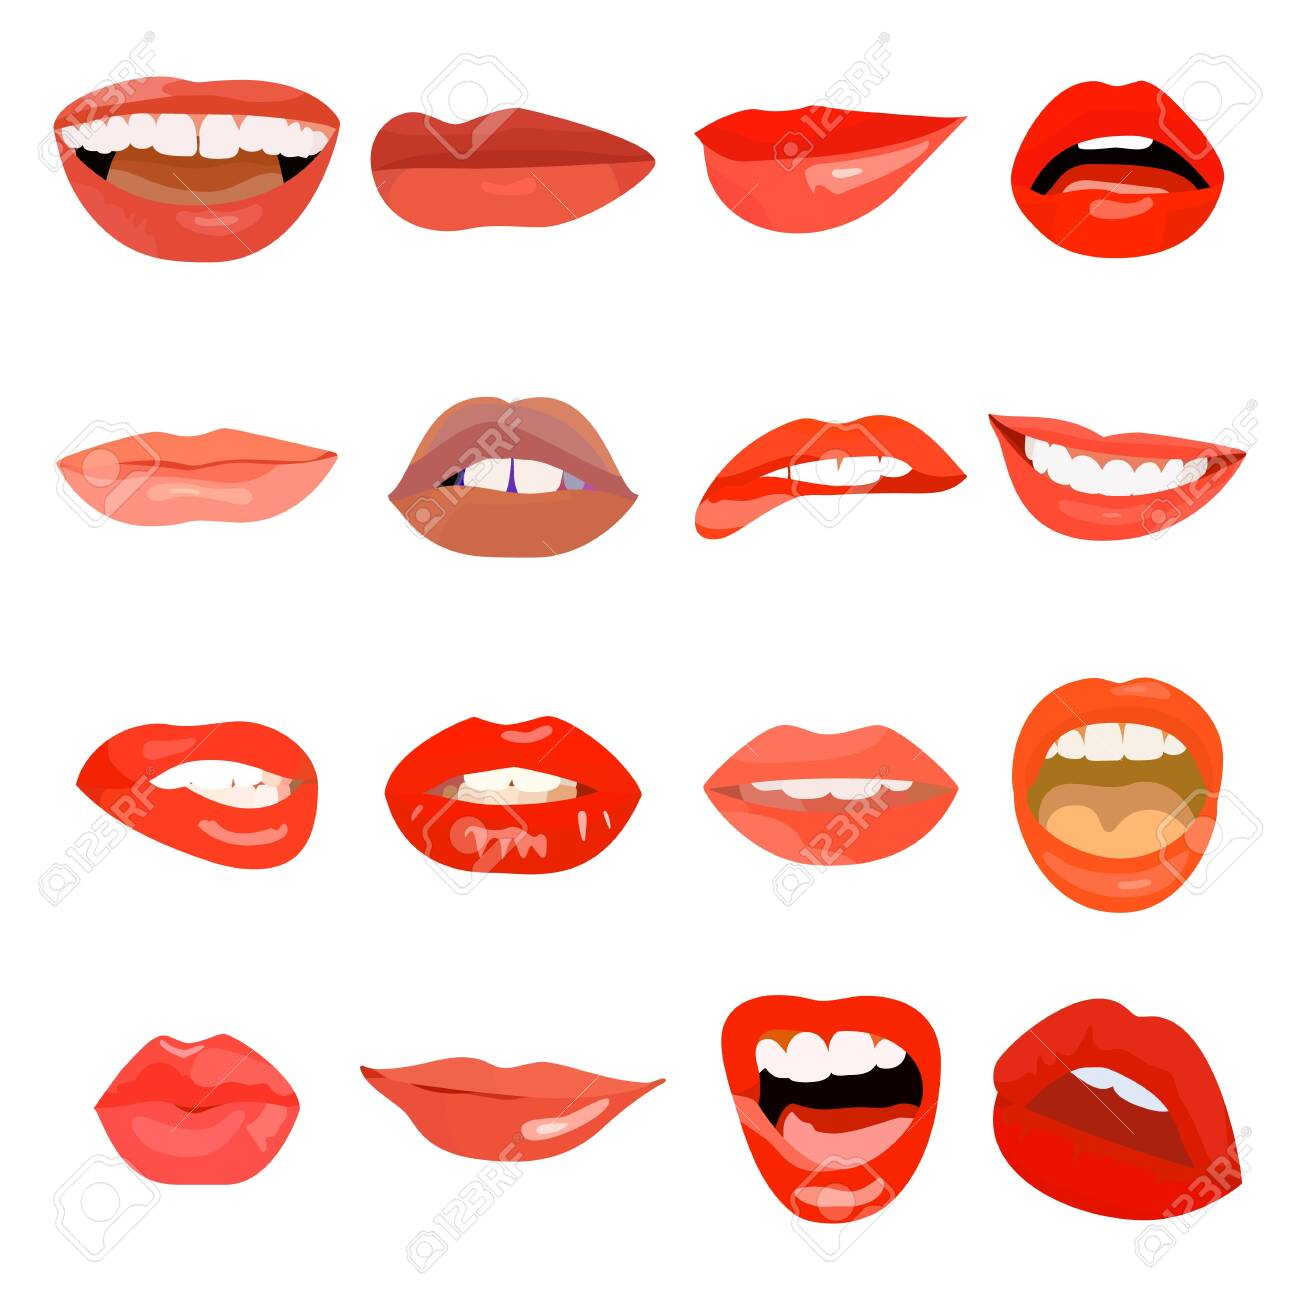 Female lips set on sweet passion. Lip design element makeup mouth. Vector print cosmetic sensuality desire tongue out. Smile woman red doodle lips - 129794235